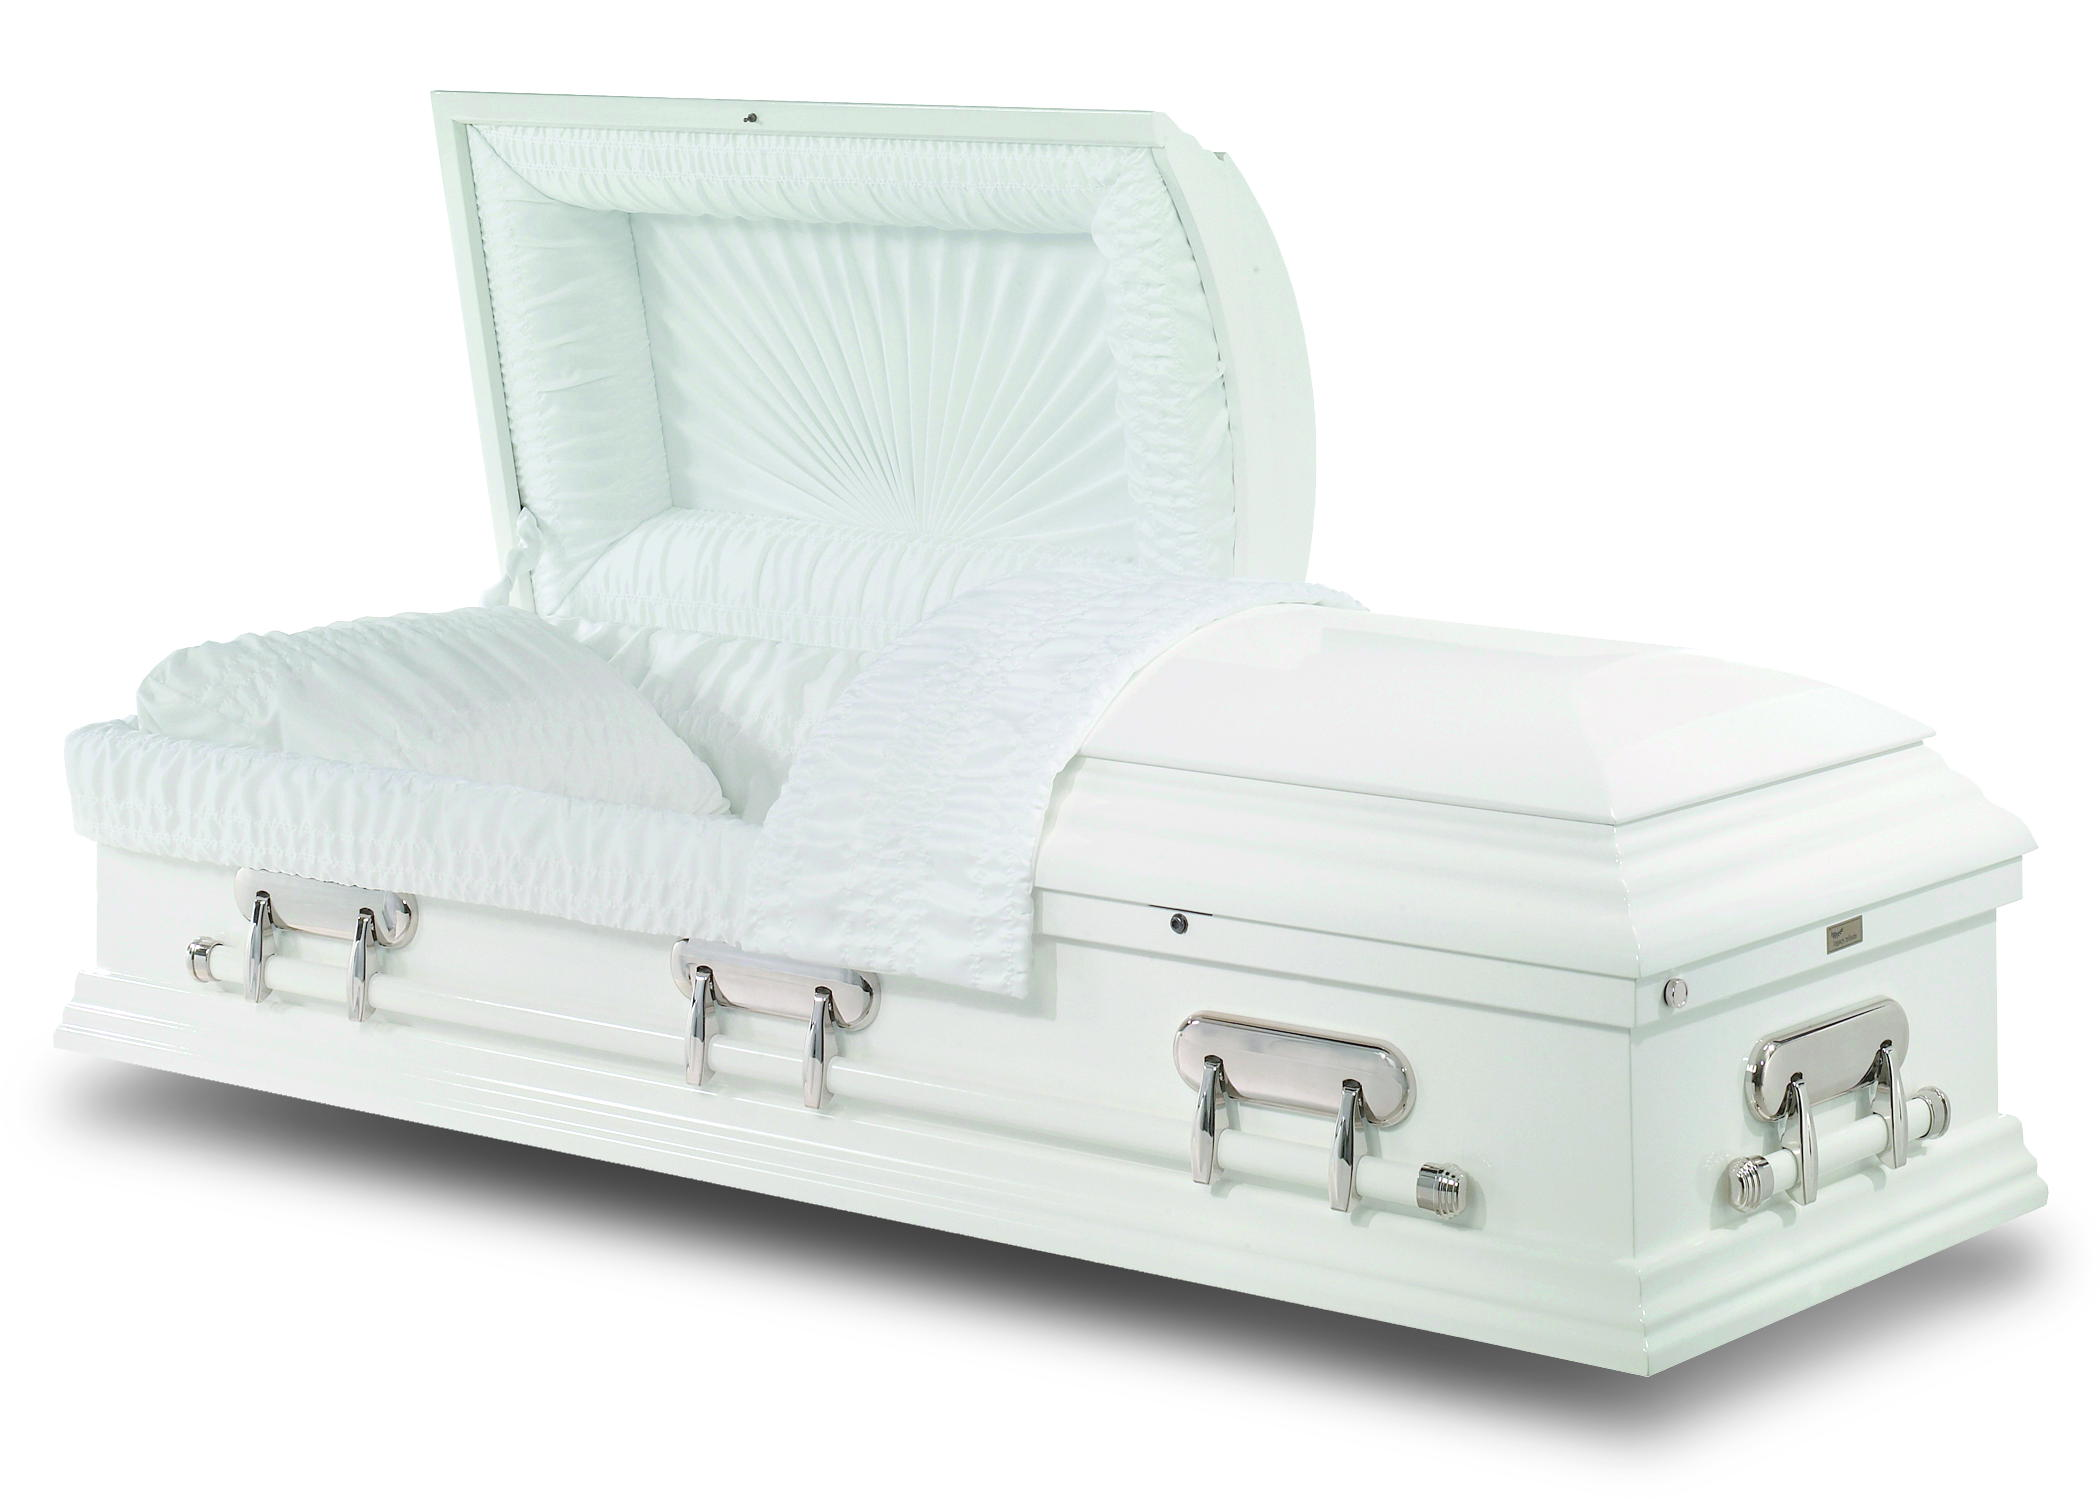 Pure white casket with a high gloss finish. With matching bar handles and mirrored handle supports. Fitted with crepe interior and sunburst pattern in the inside of the lid.